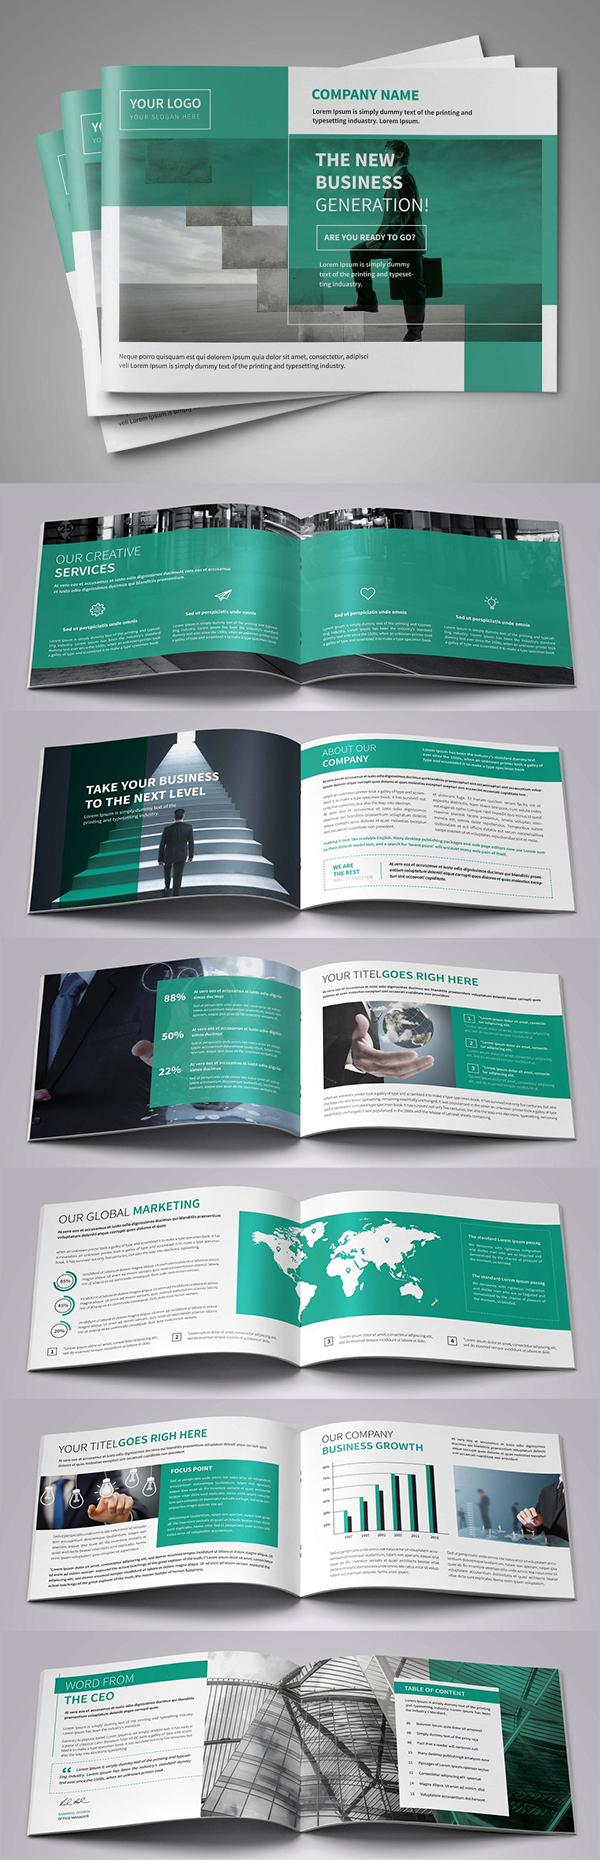 A5 Awesome Business Brochure